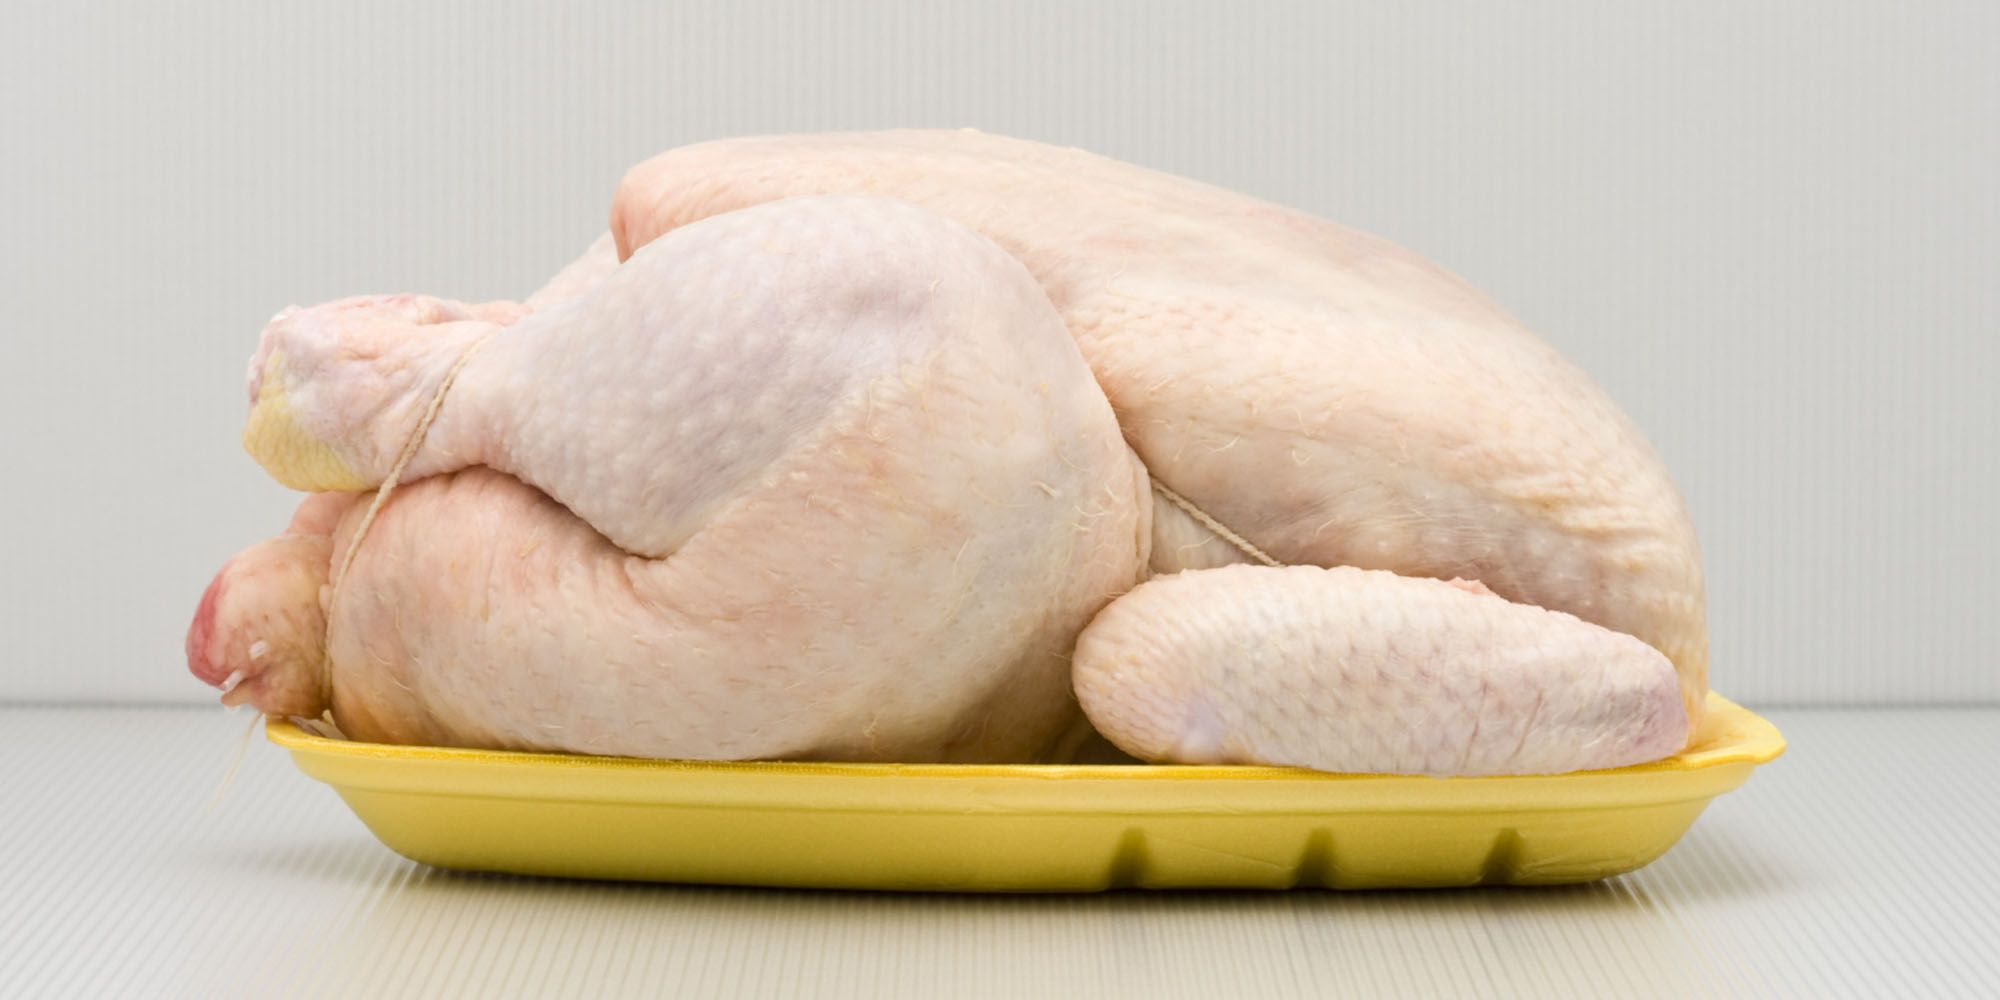 More Than 500,000 Pounds of Chicken Recalled By Major Fast Food Supplier